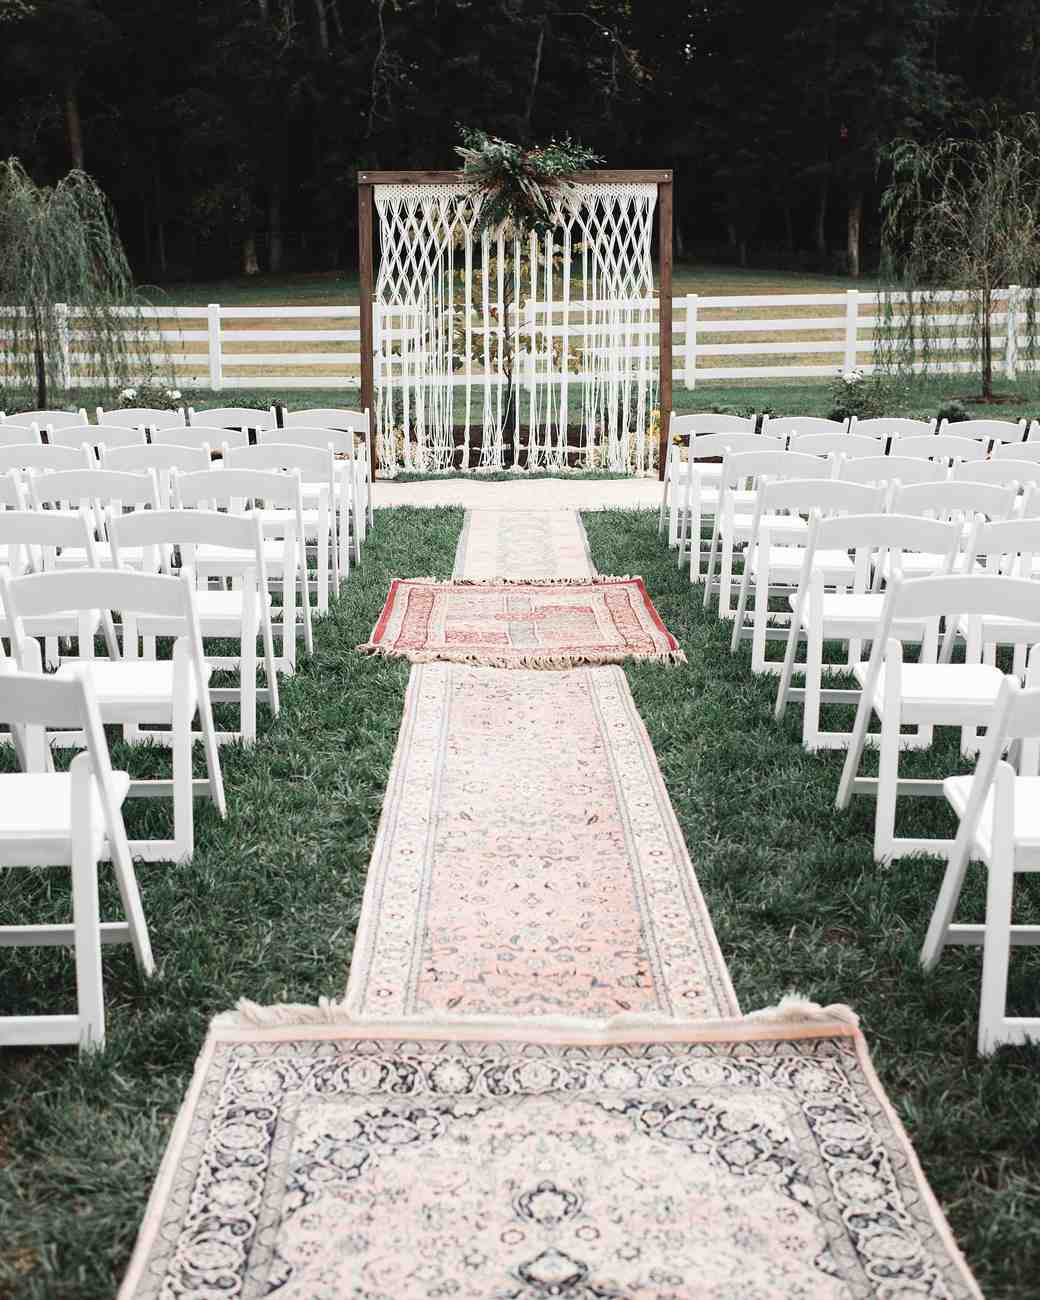 rugs ceremony site